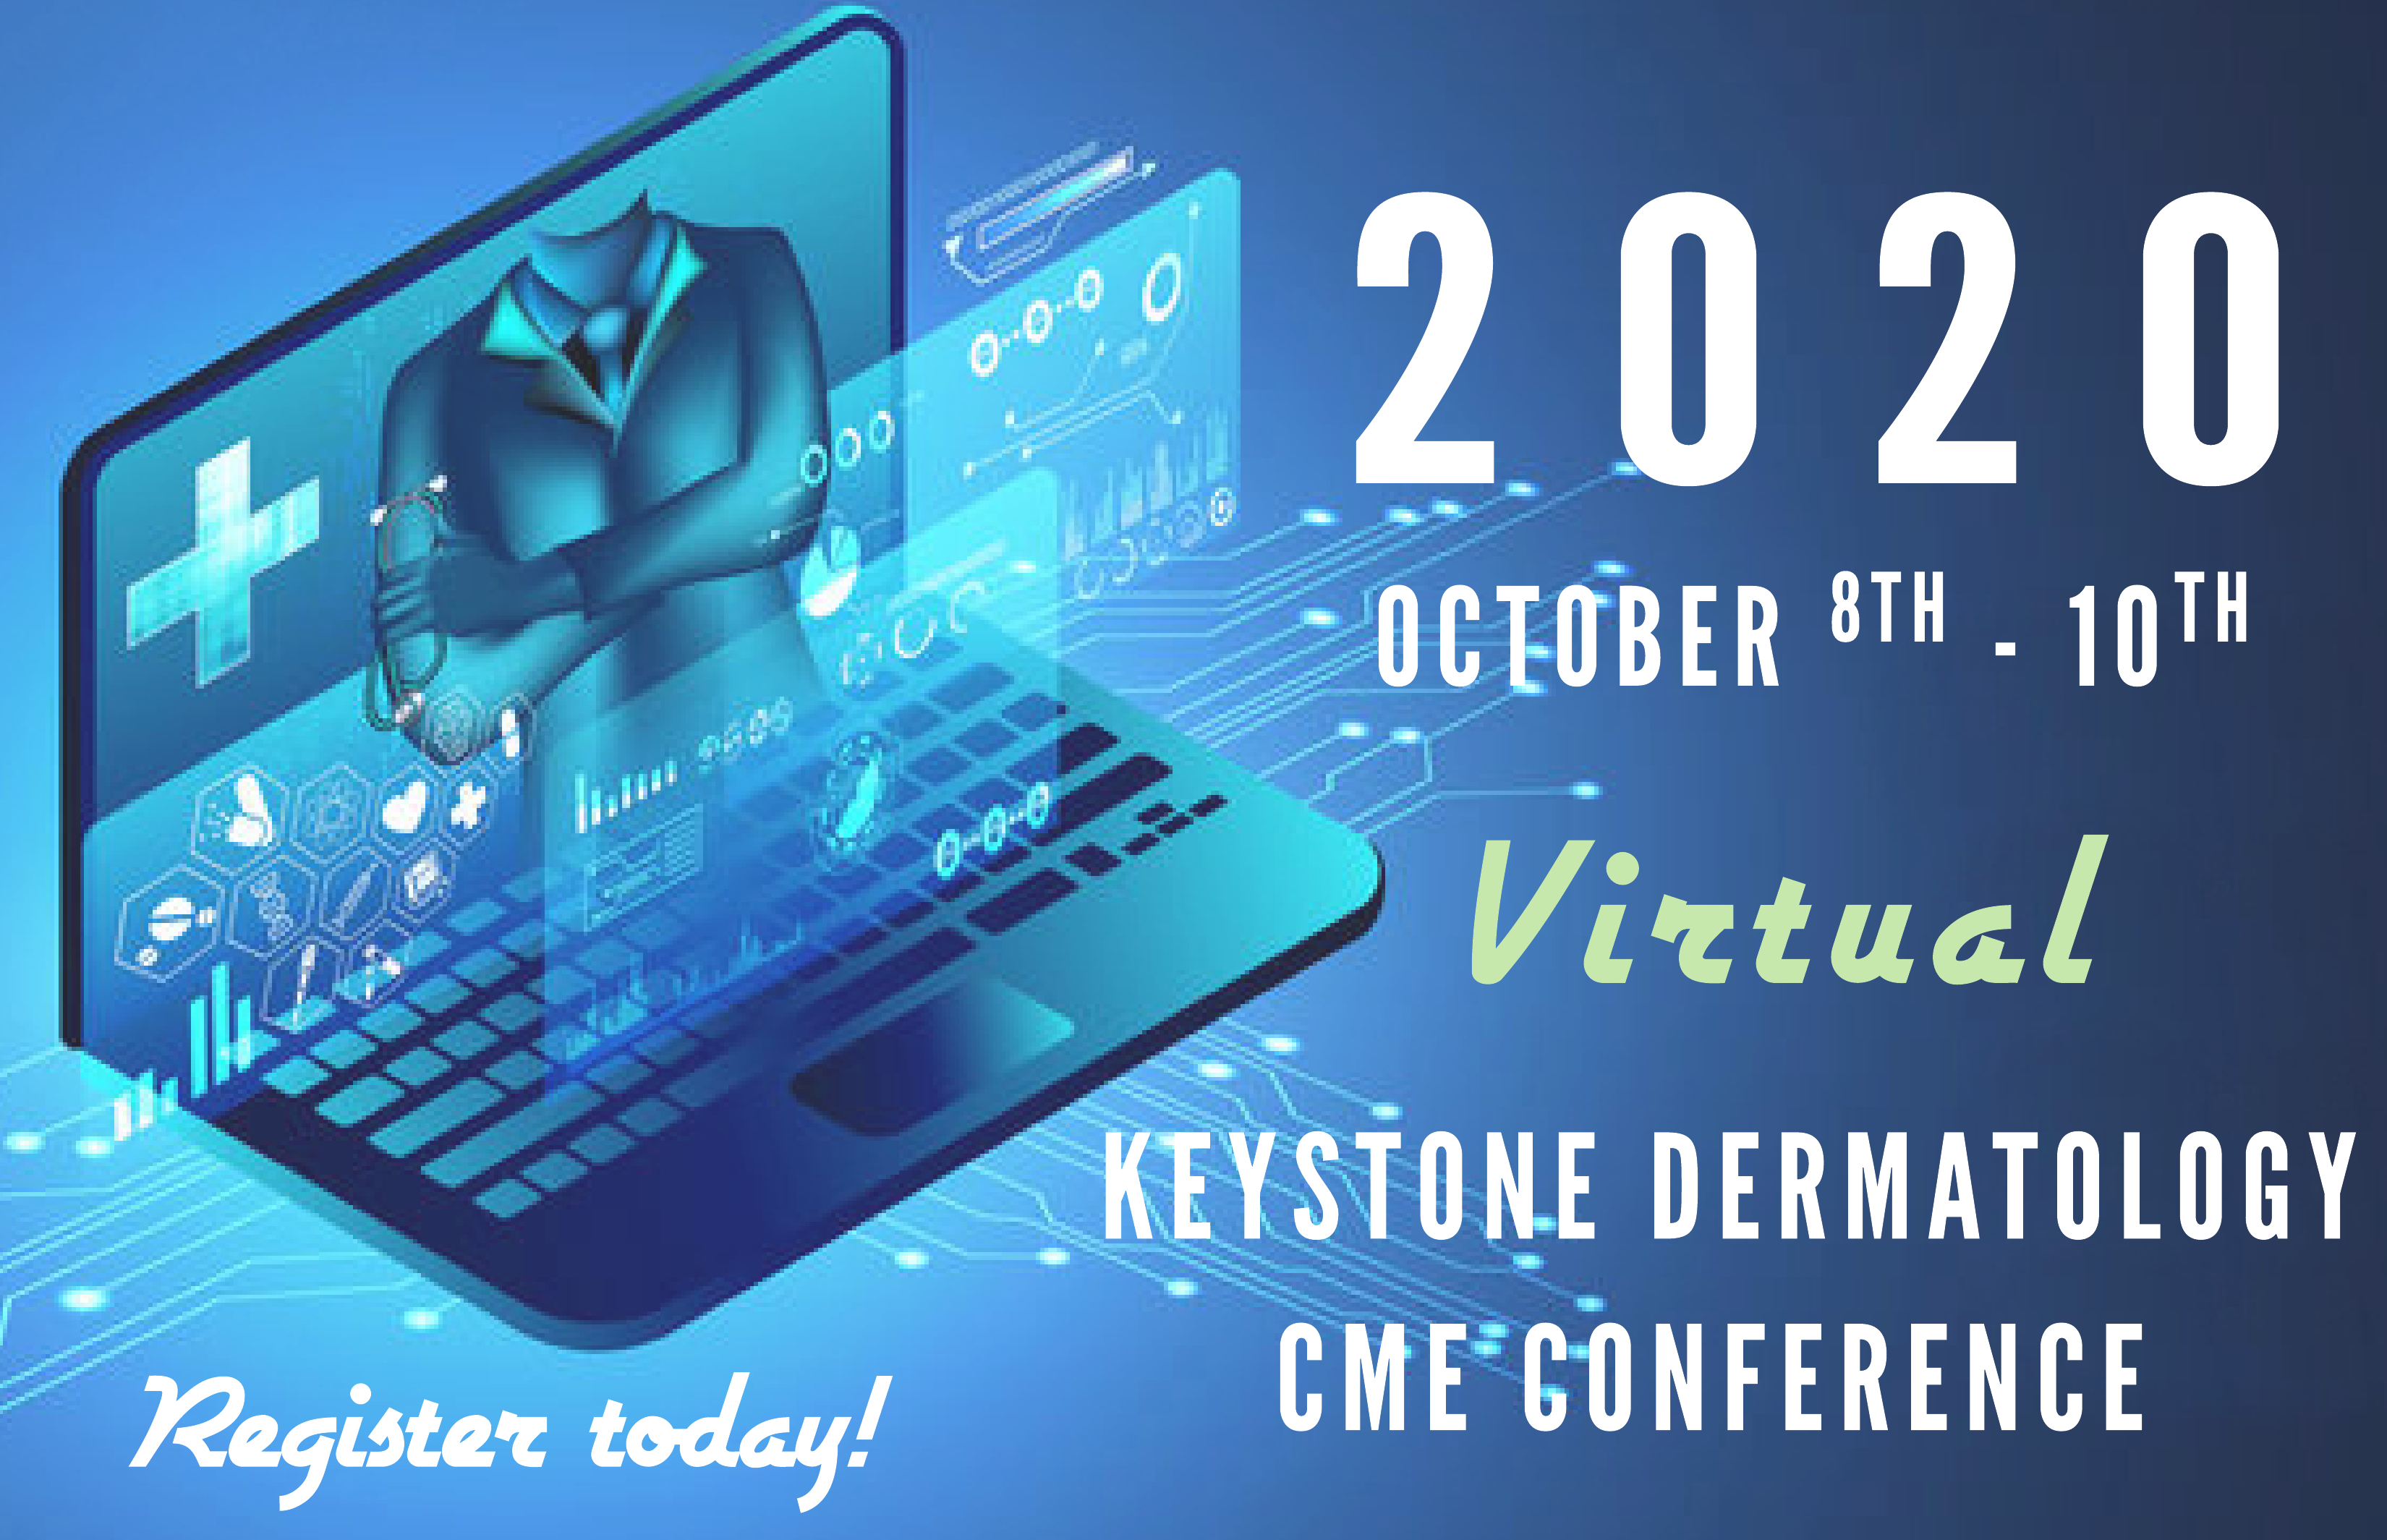 Keystone Dermatology Virtual CME Conference Coming October 8-10 image